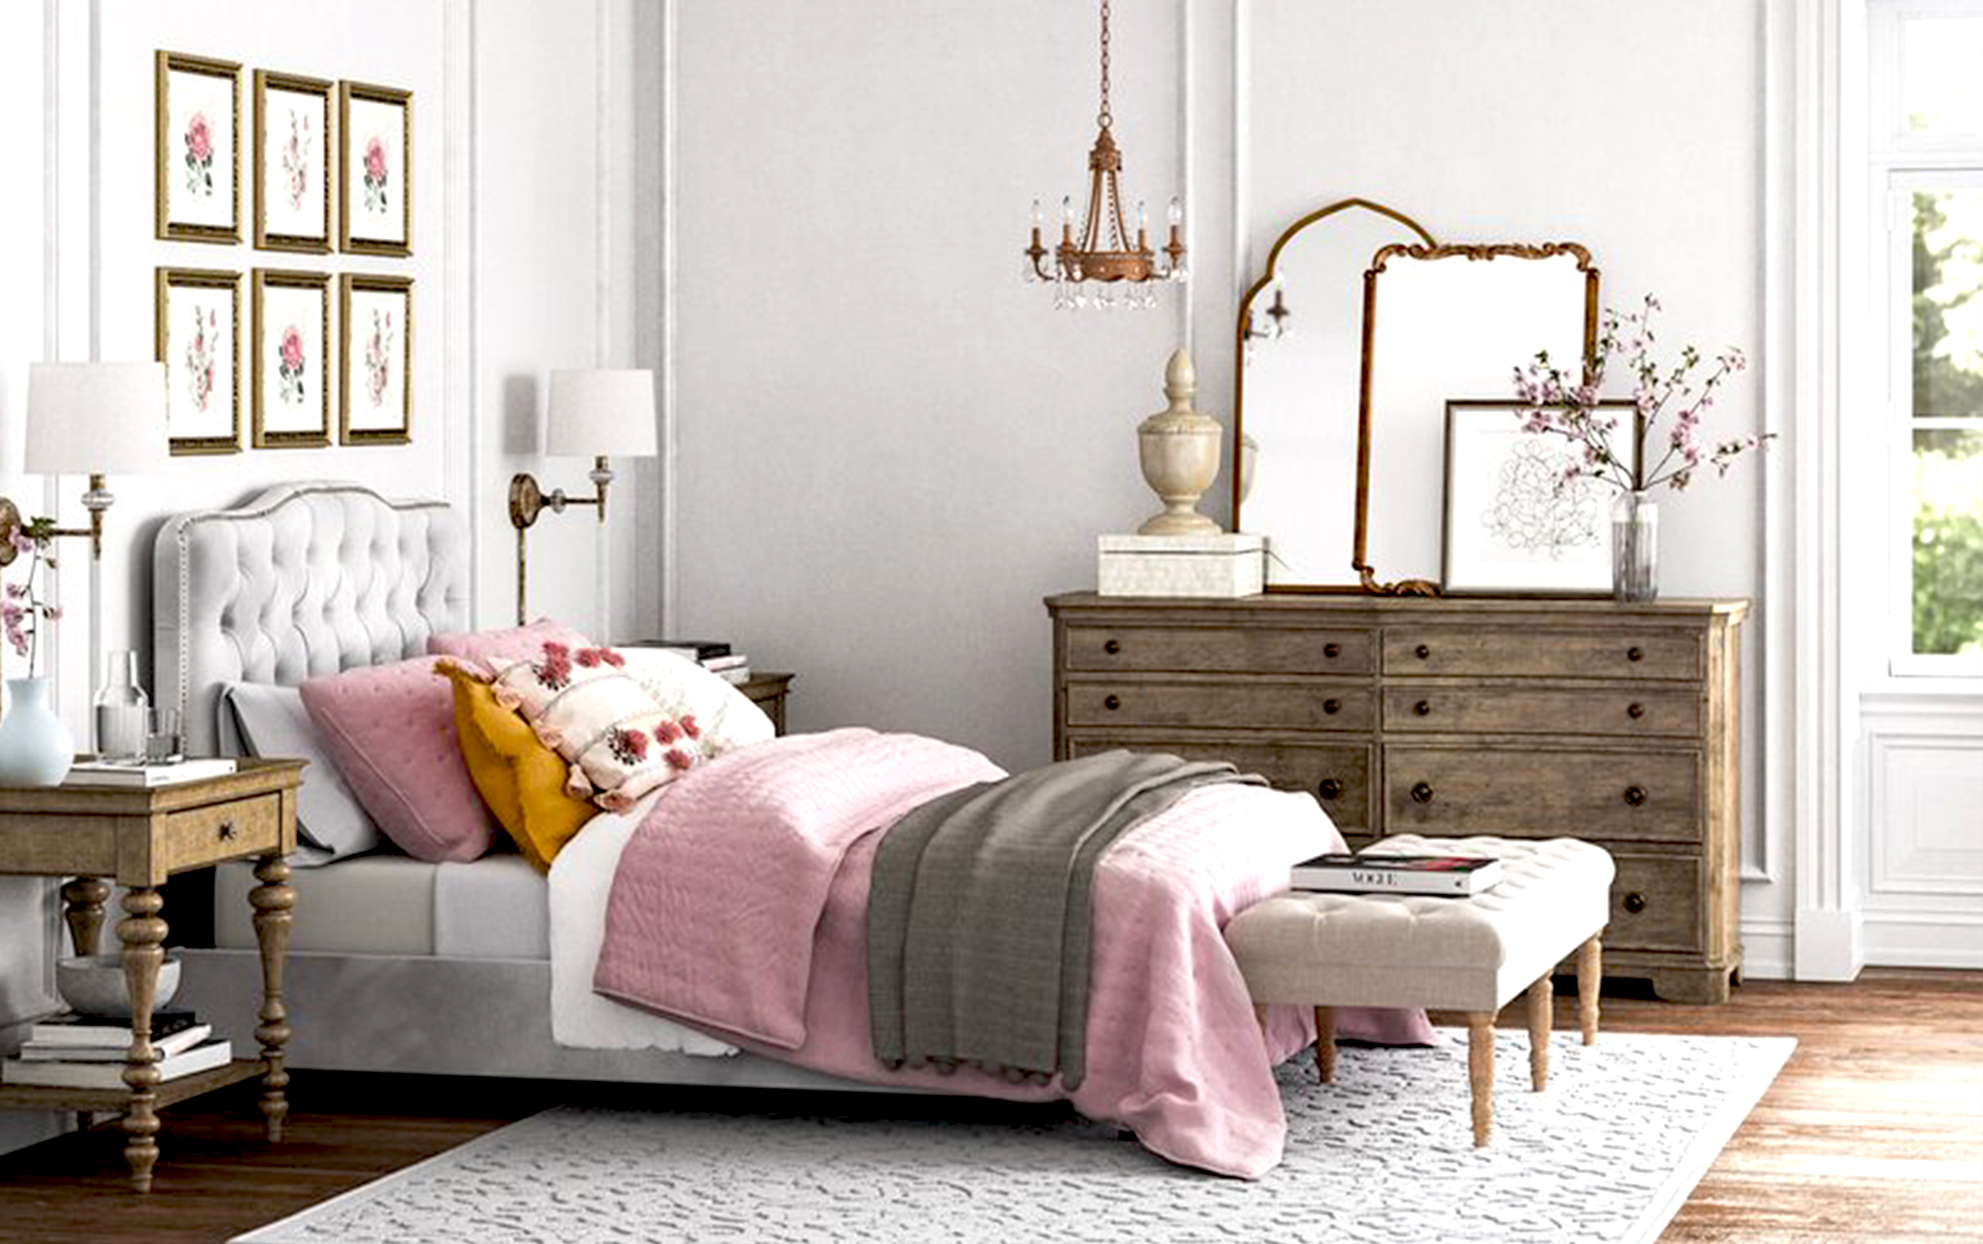 Bedroom with pink bedding and mirrors on a dresser